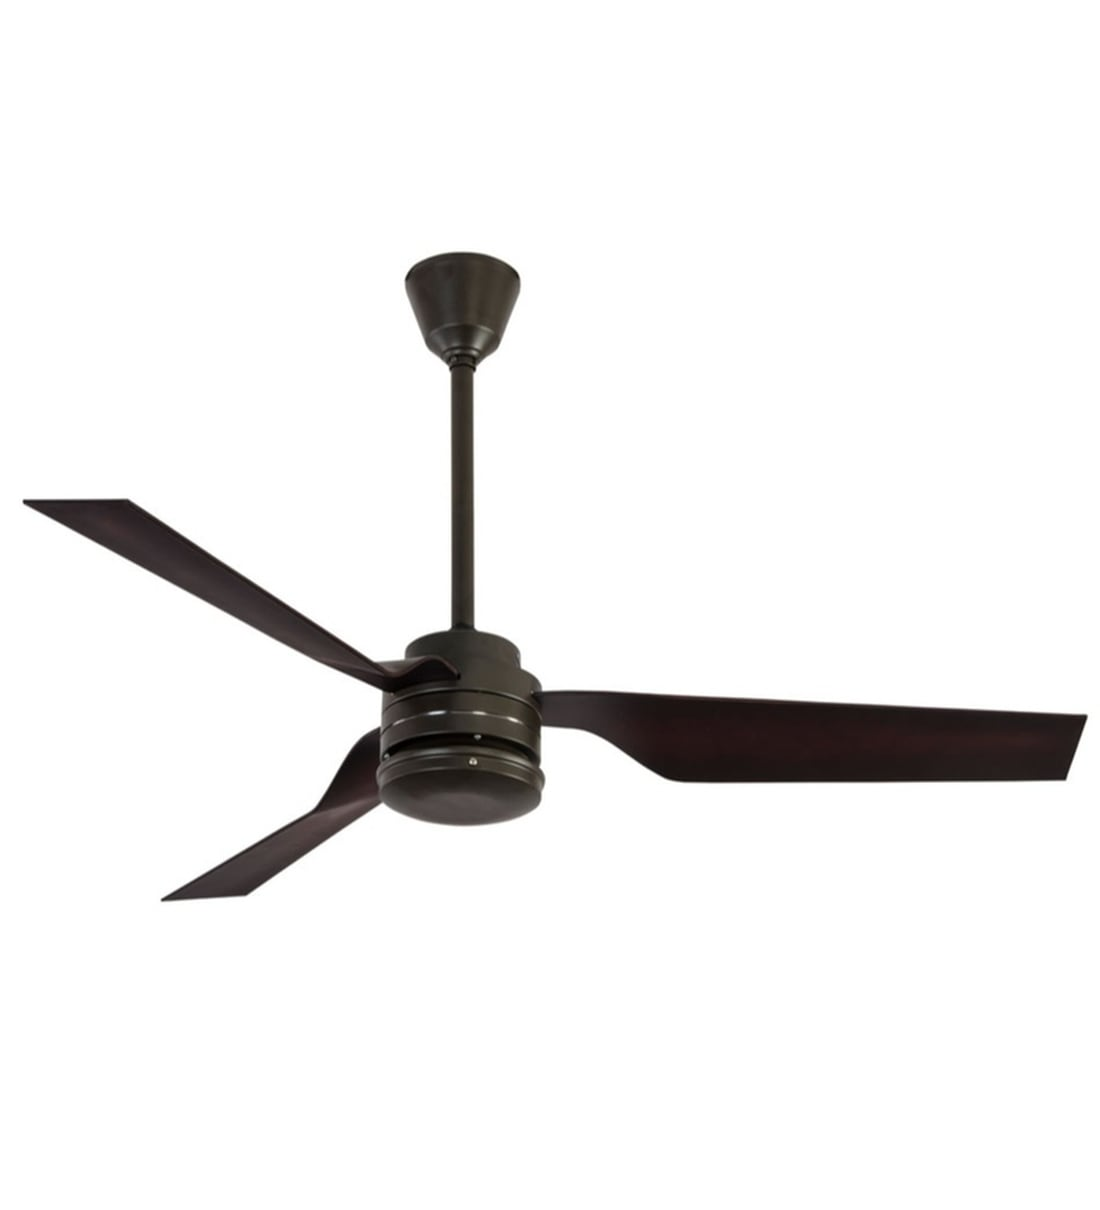 Buy Hunter Cabo Frio 1320 Mm Bronze Ceiling Fan By Usha Online Homeware Homeware Discontinued Pepperfry Product